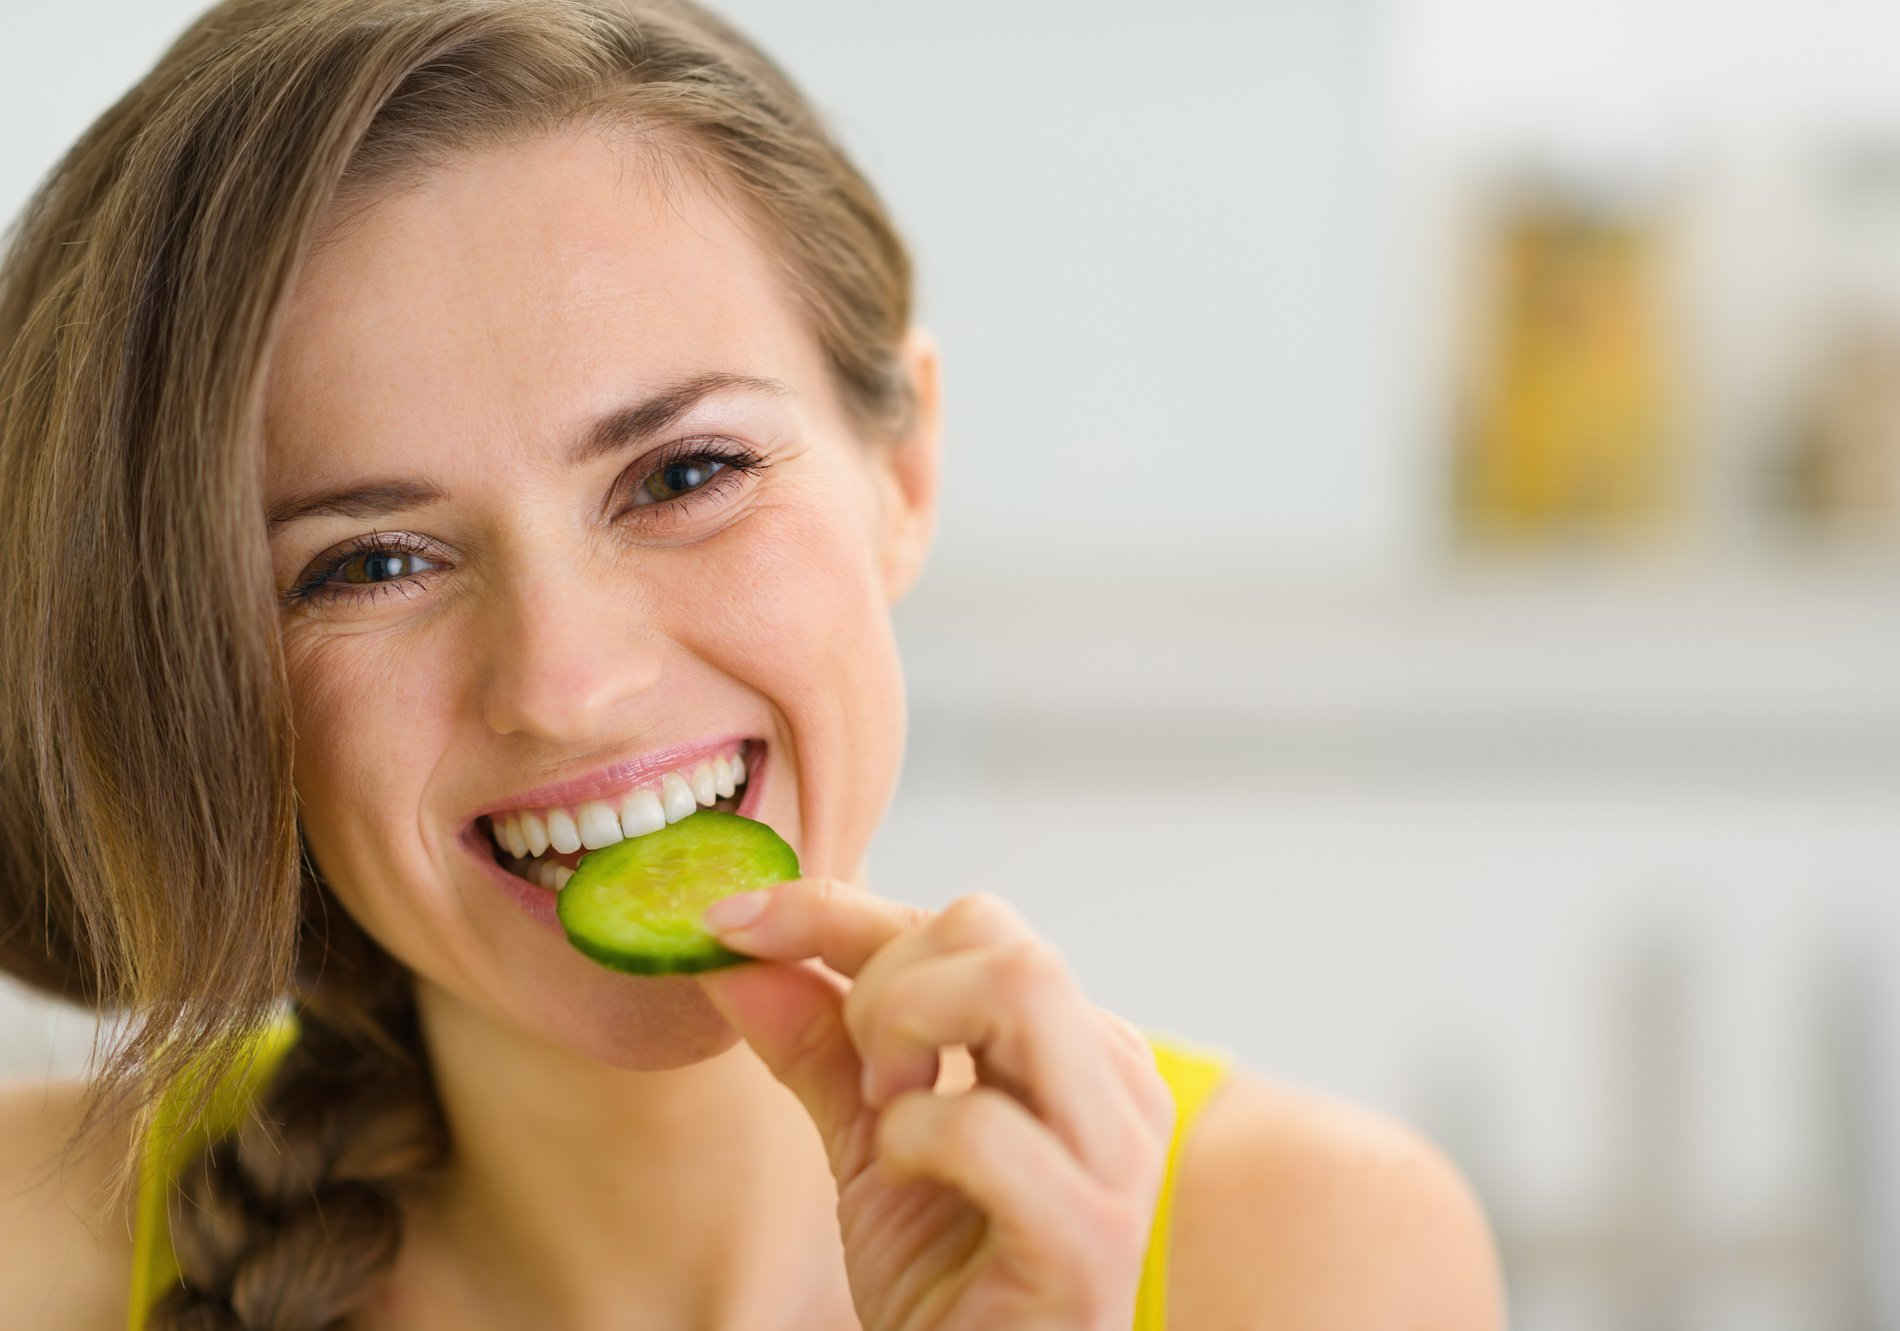 Can I Eat or Drink Immediatly Afer Oral Surgery - PRECiDENT.health